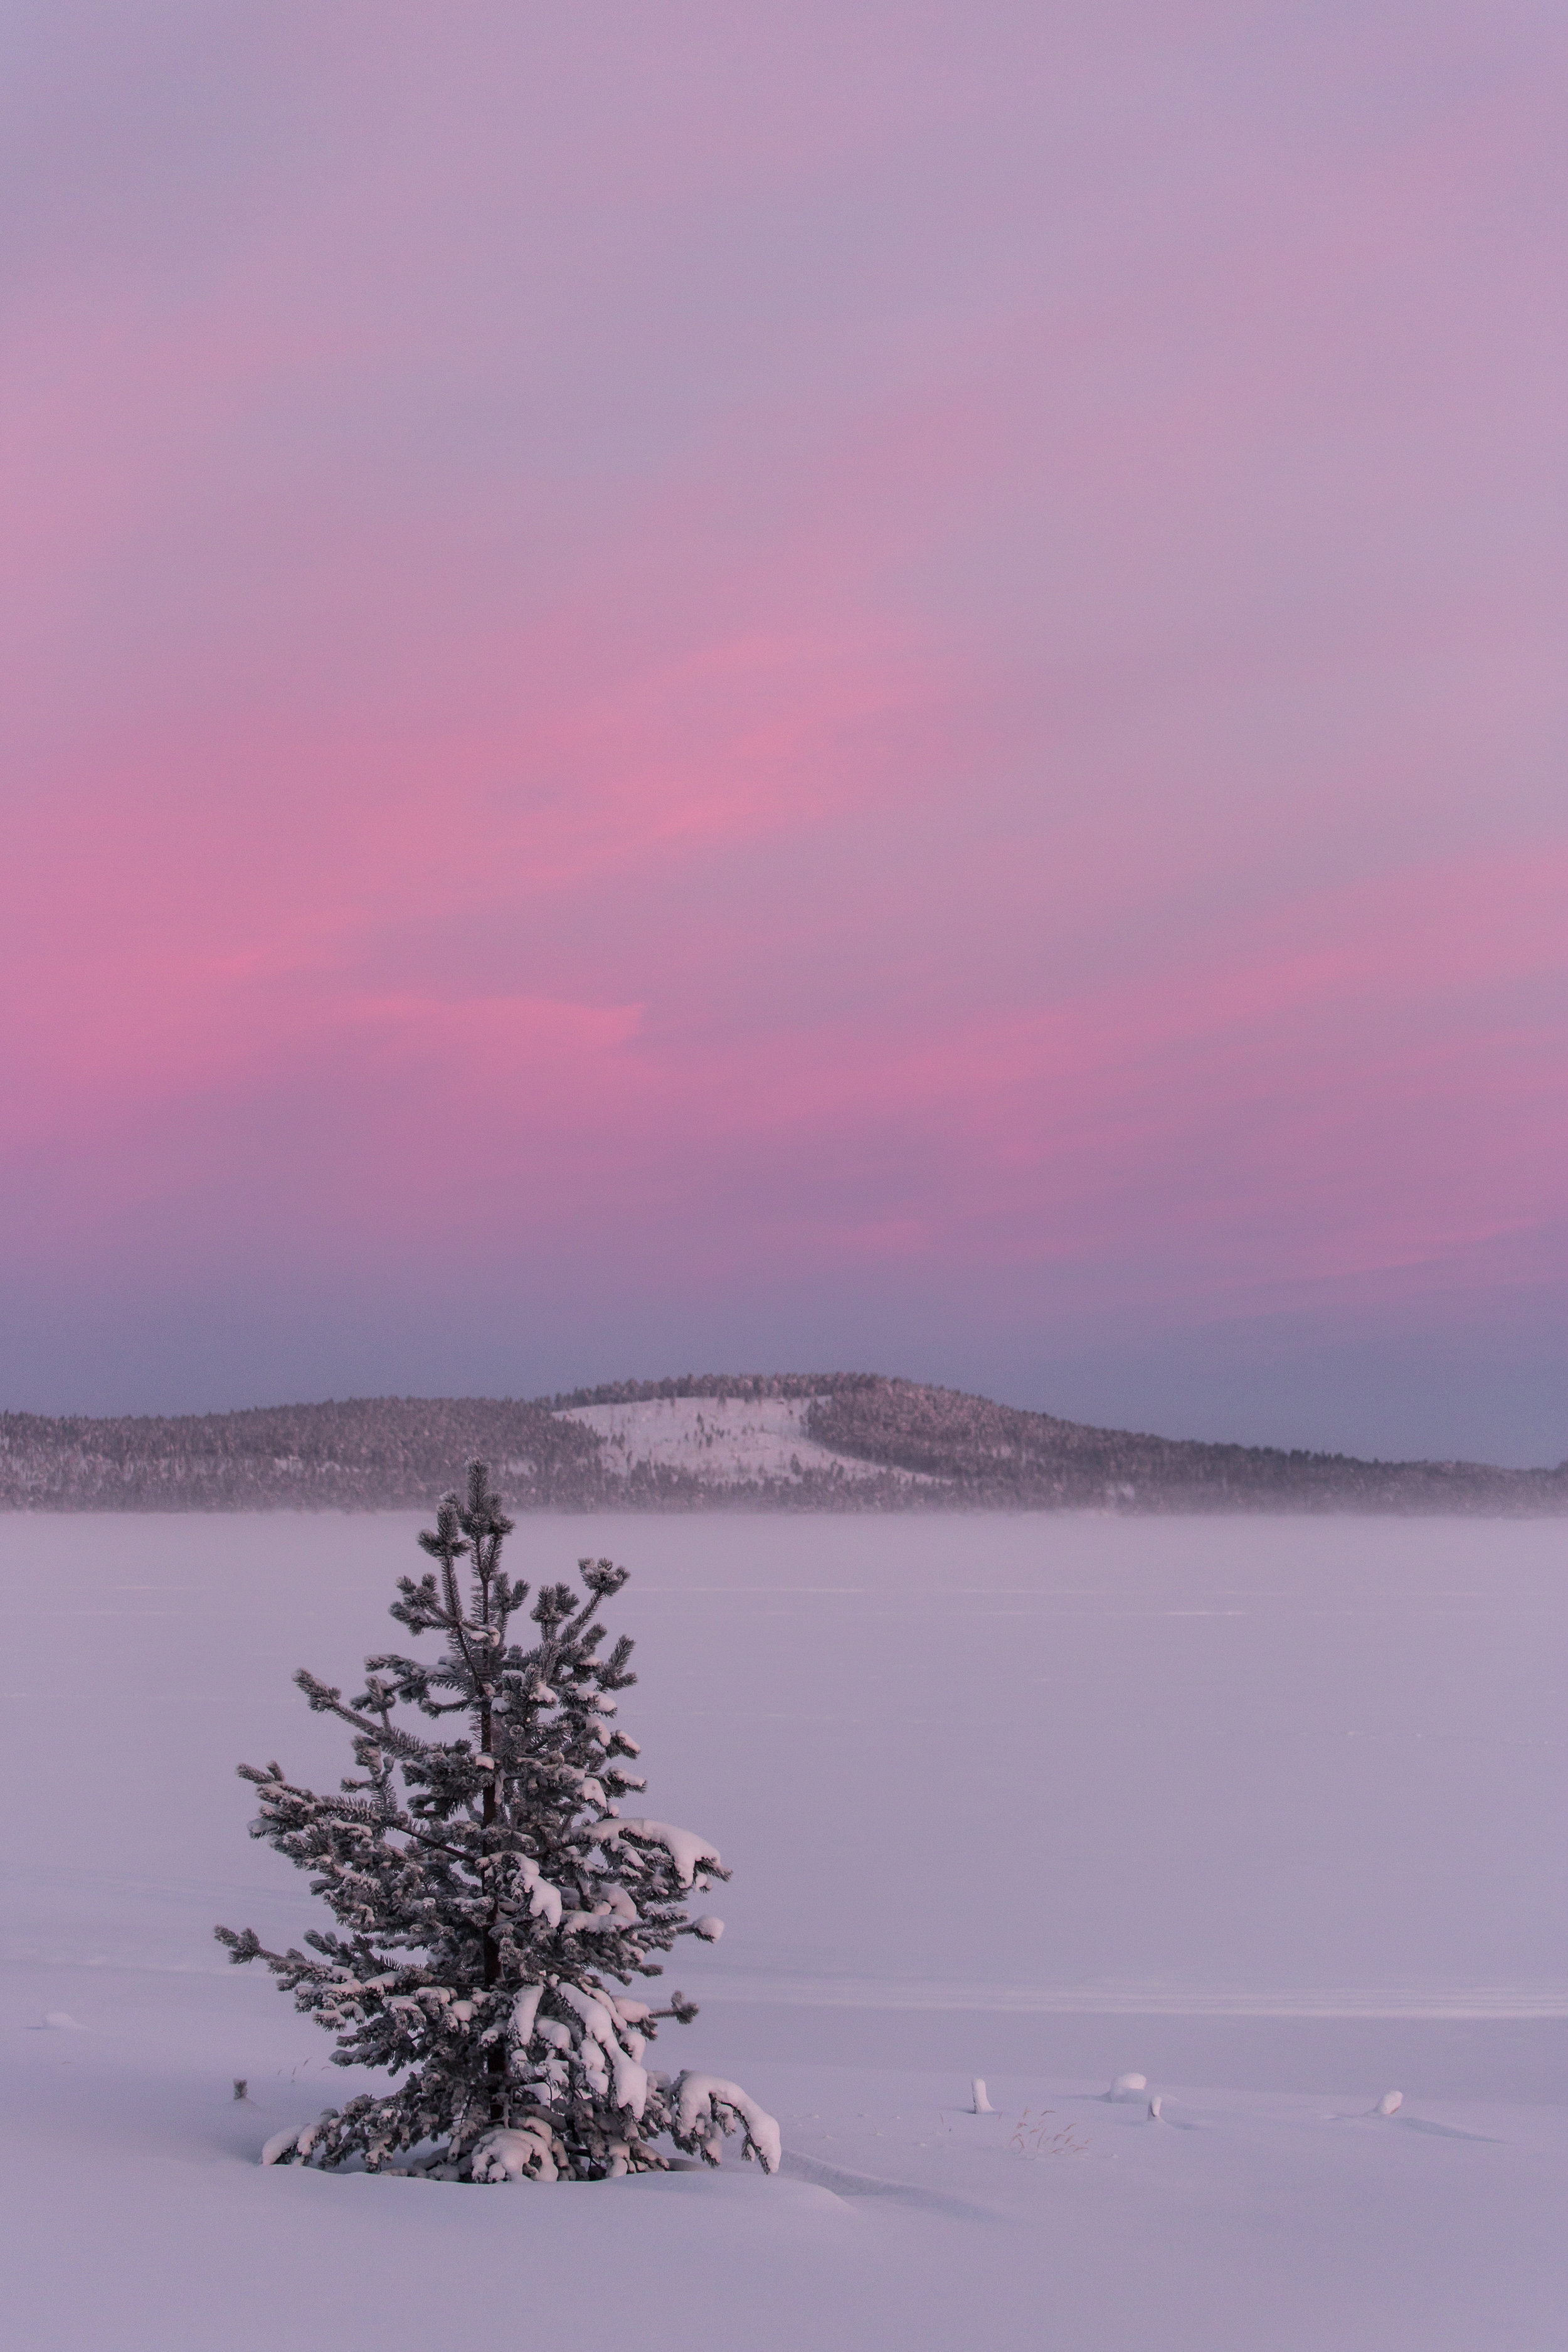 The landscape blanketed with snow, whilst the high cloud accentuates the Polar colour palette.